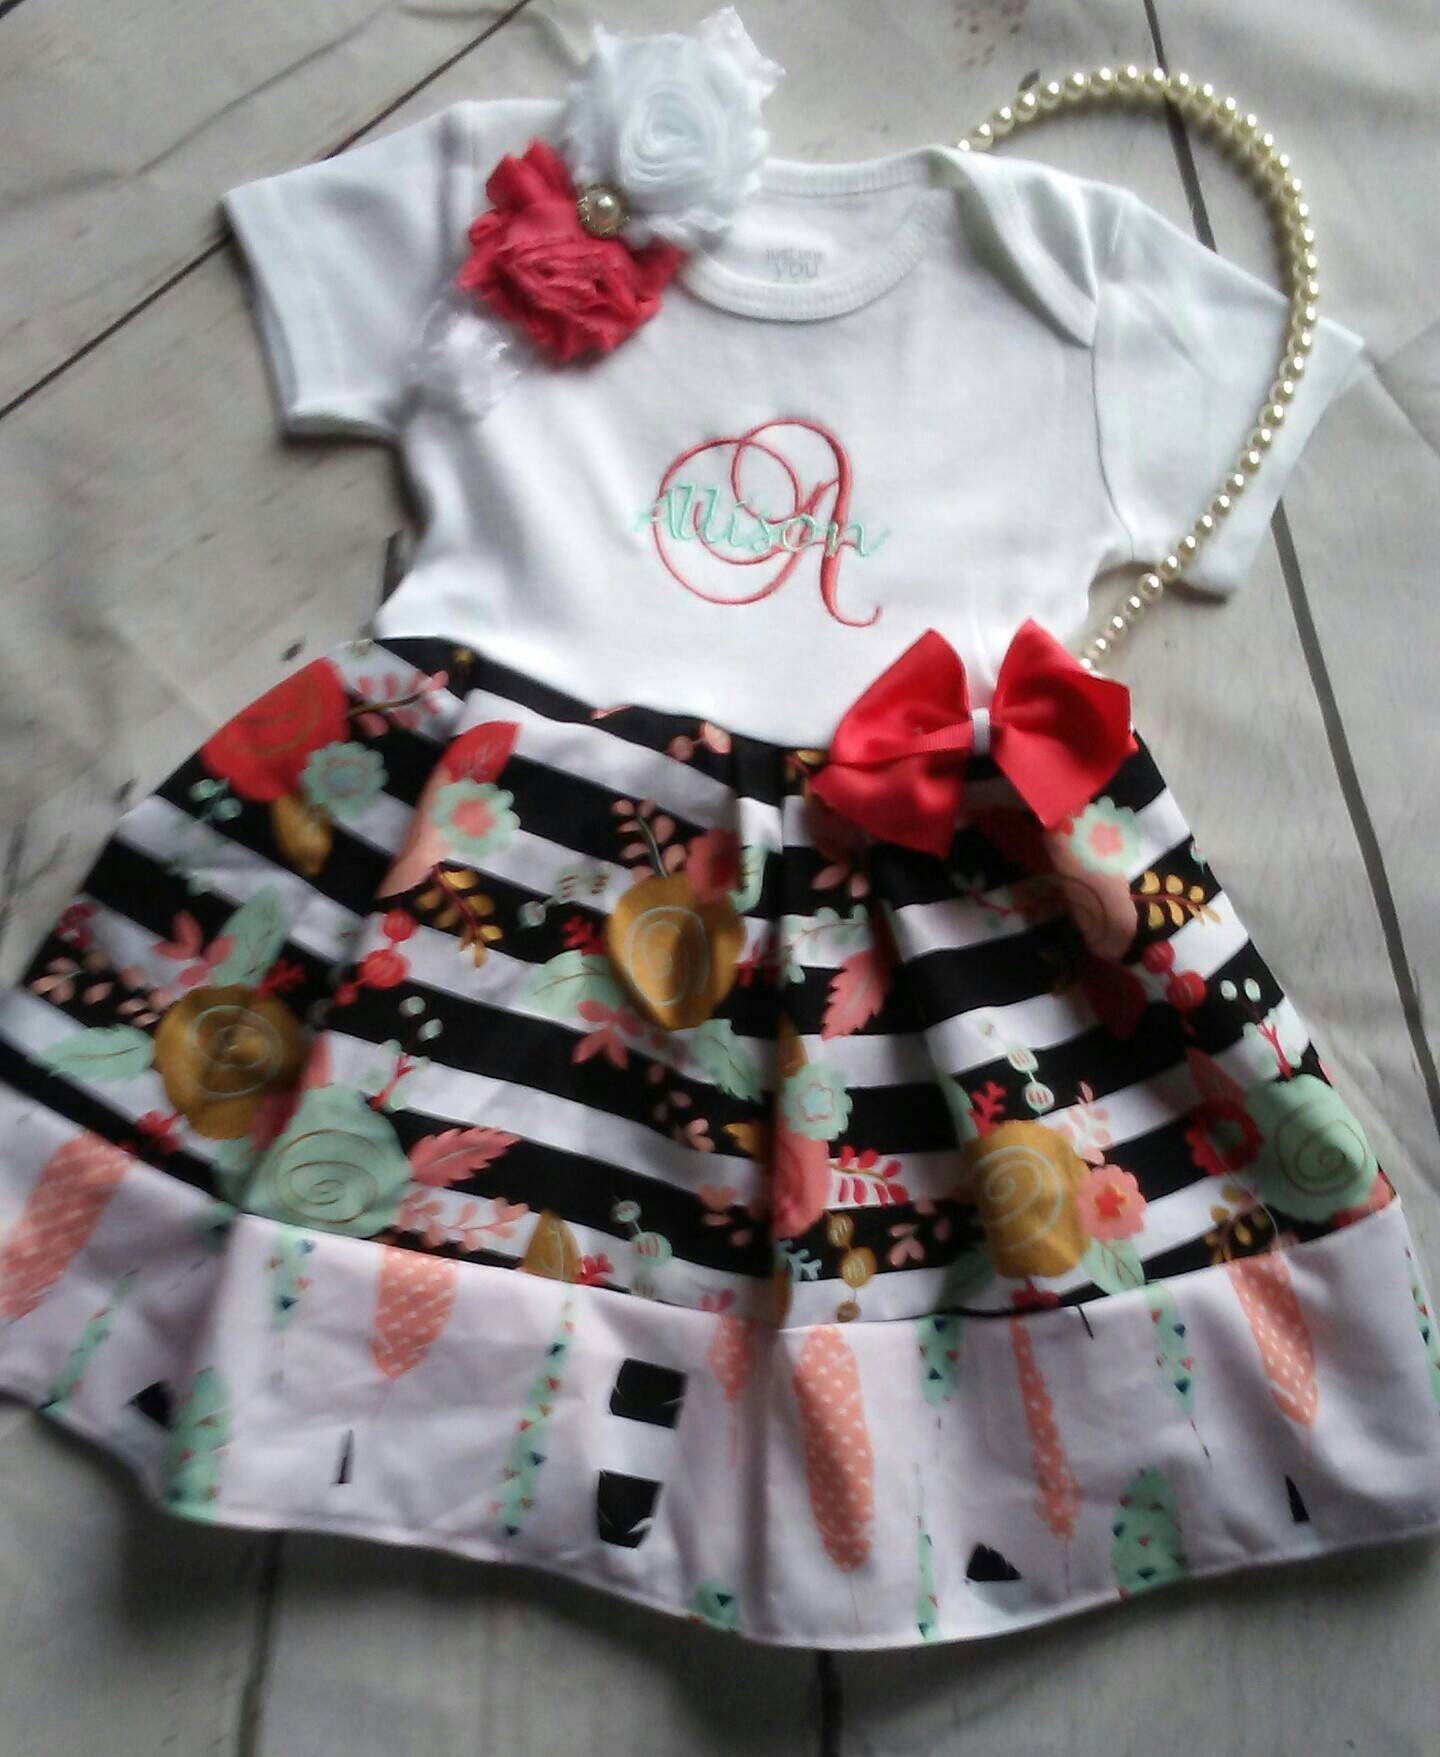 Baby girl coming home outfit, baby girl clothes, baby girl outfits ...